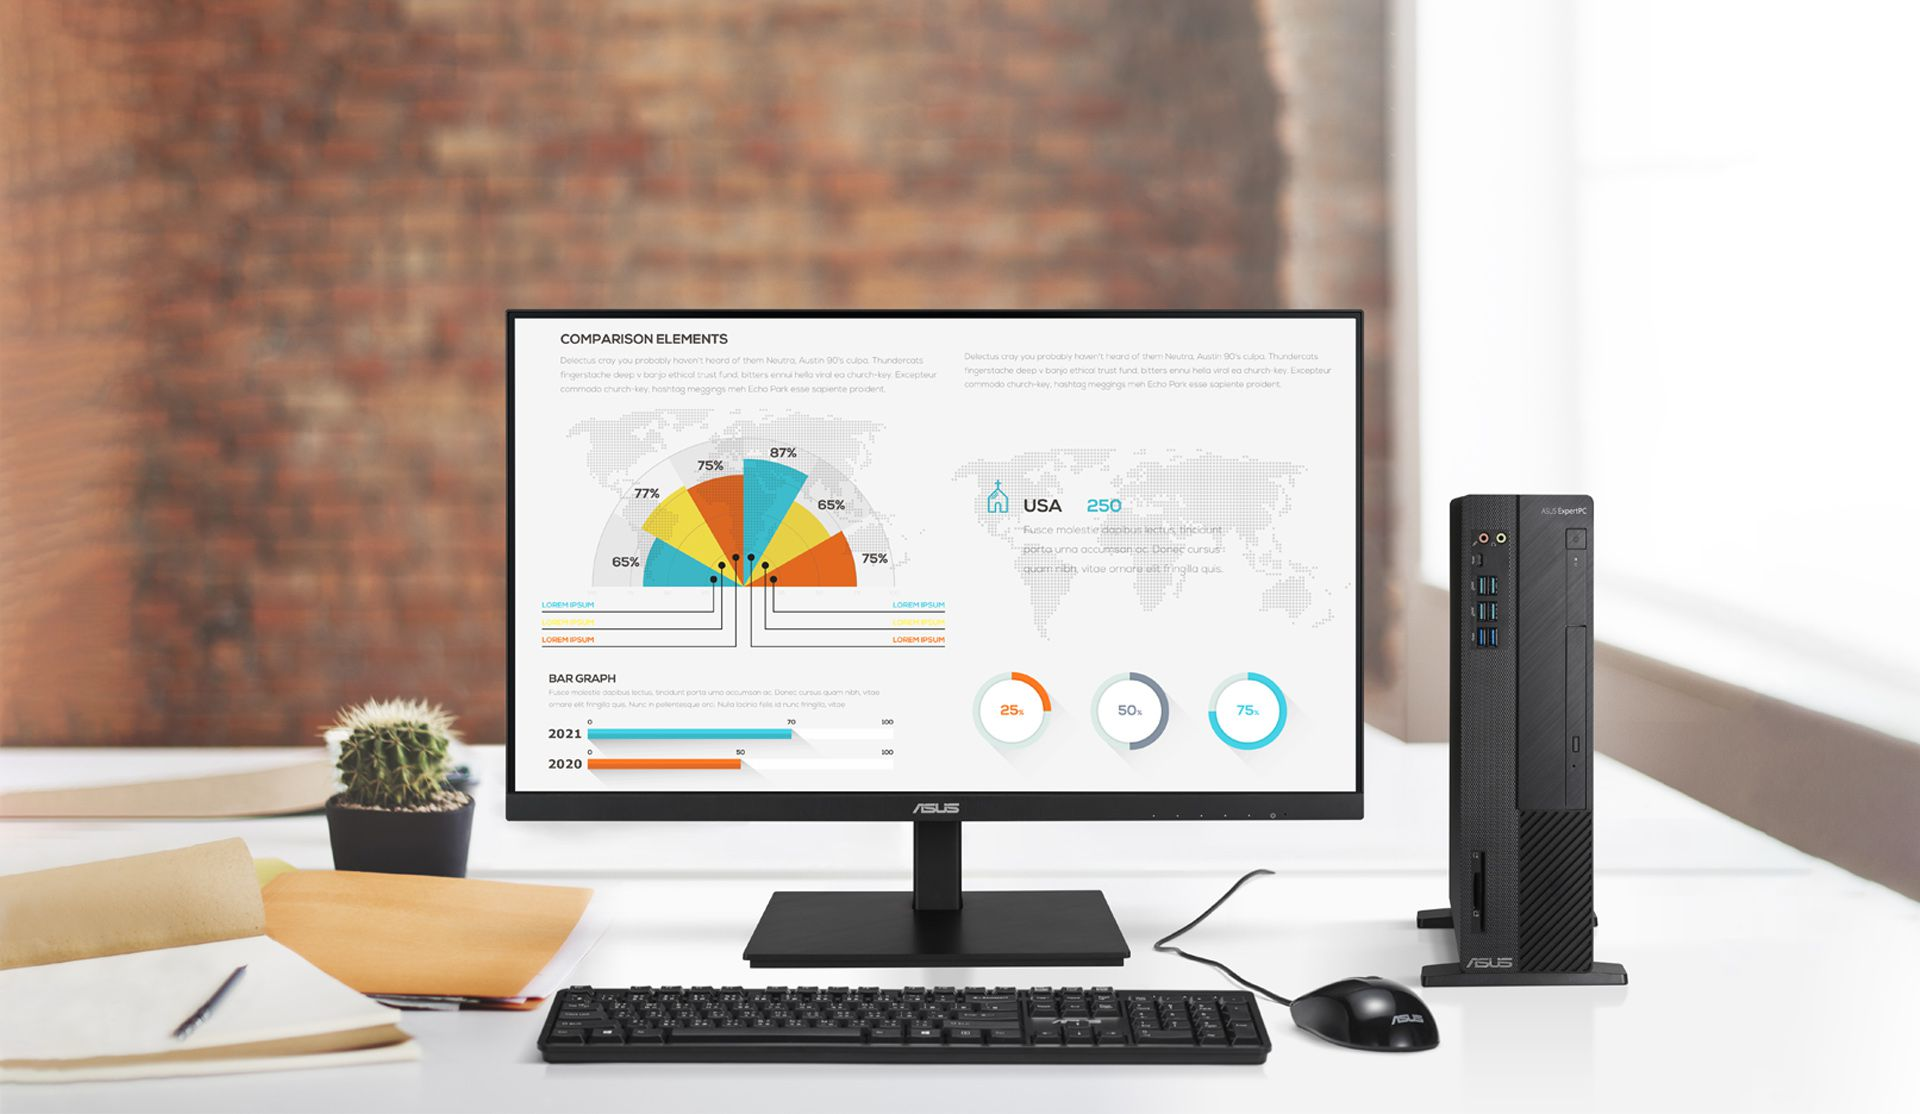 C1241QSB is a 23.8-inch Full HD monitor that features an integrated Full HD (2MP) webcam, microphone array and stereo speakers for video conferencing and live-streaming.